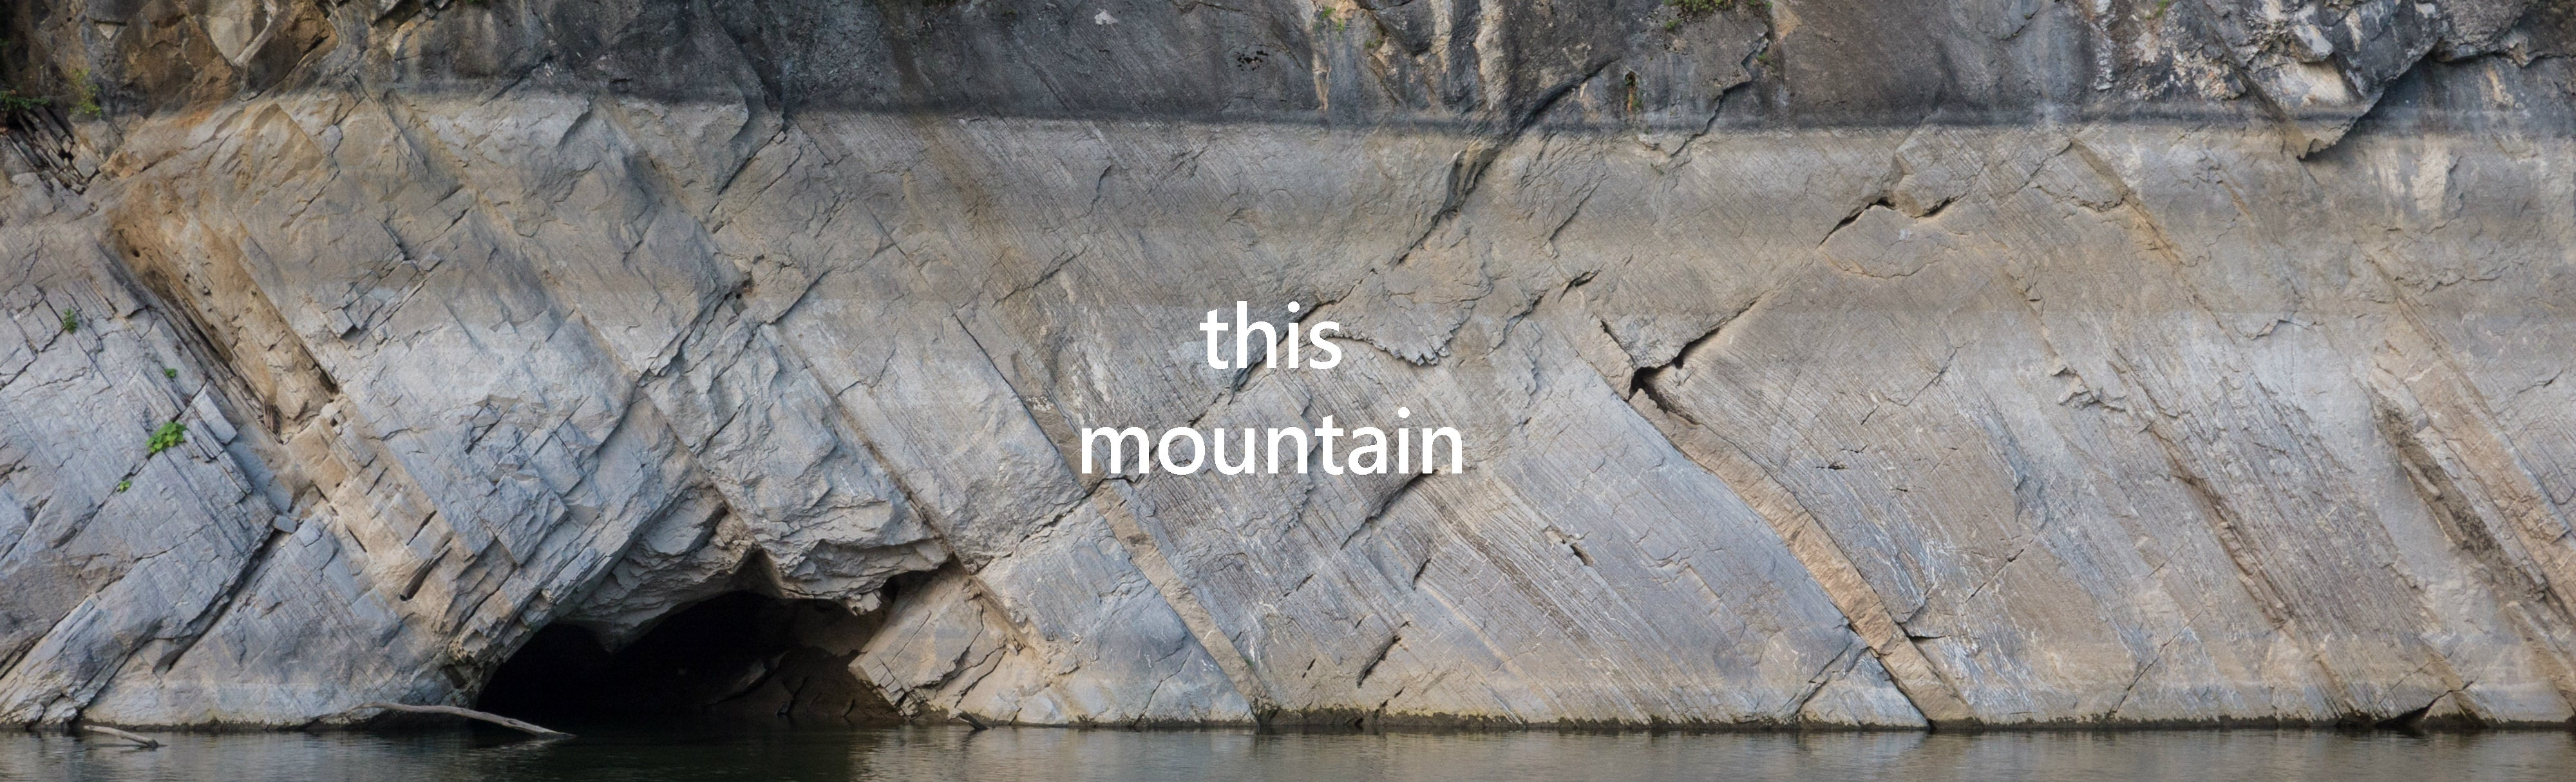 this mountain